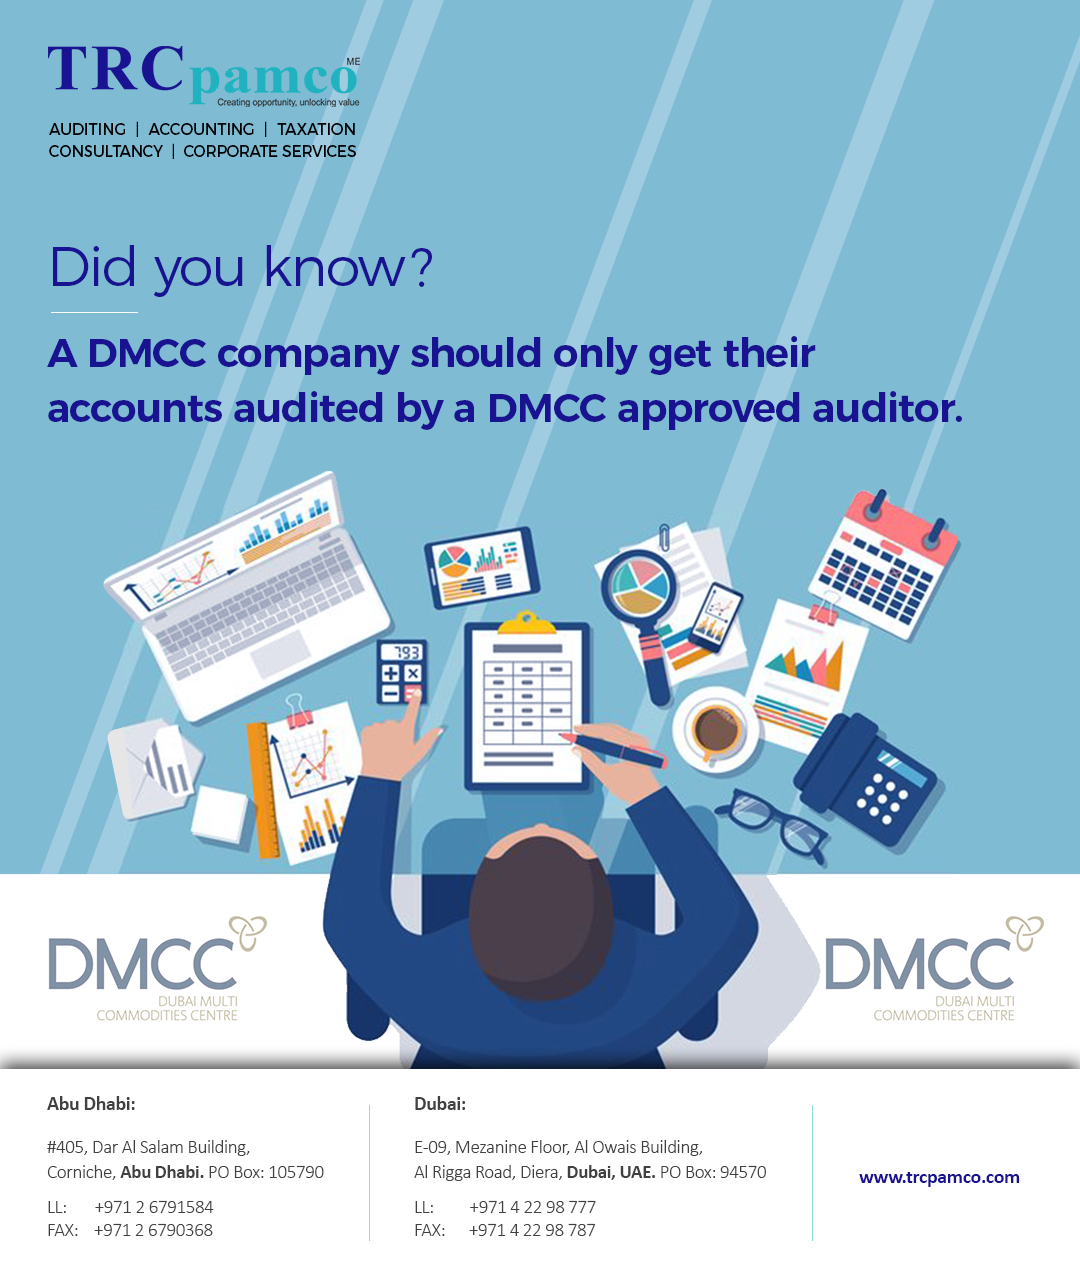 Dmcc Provides A List Of Approved Auditors On It S Website Every